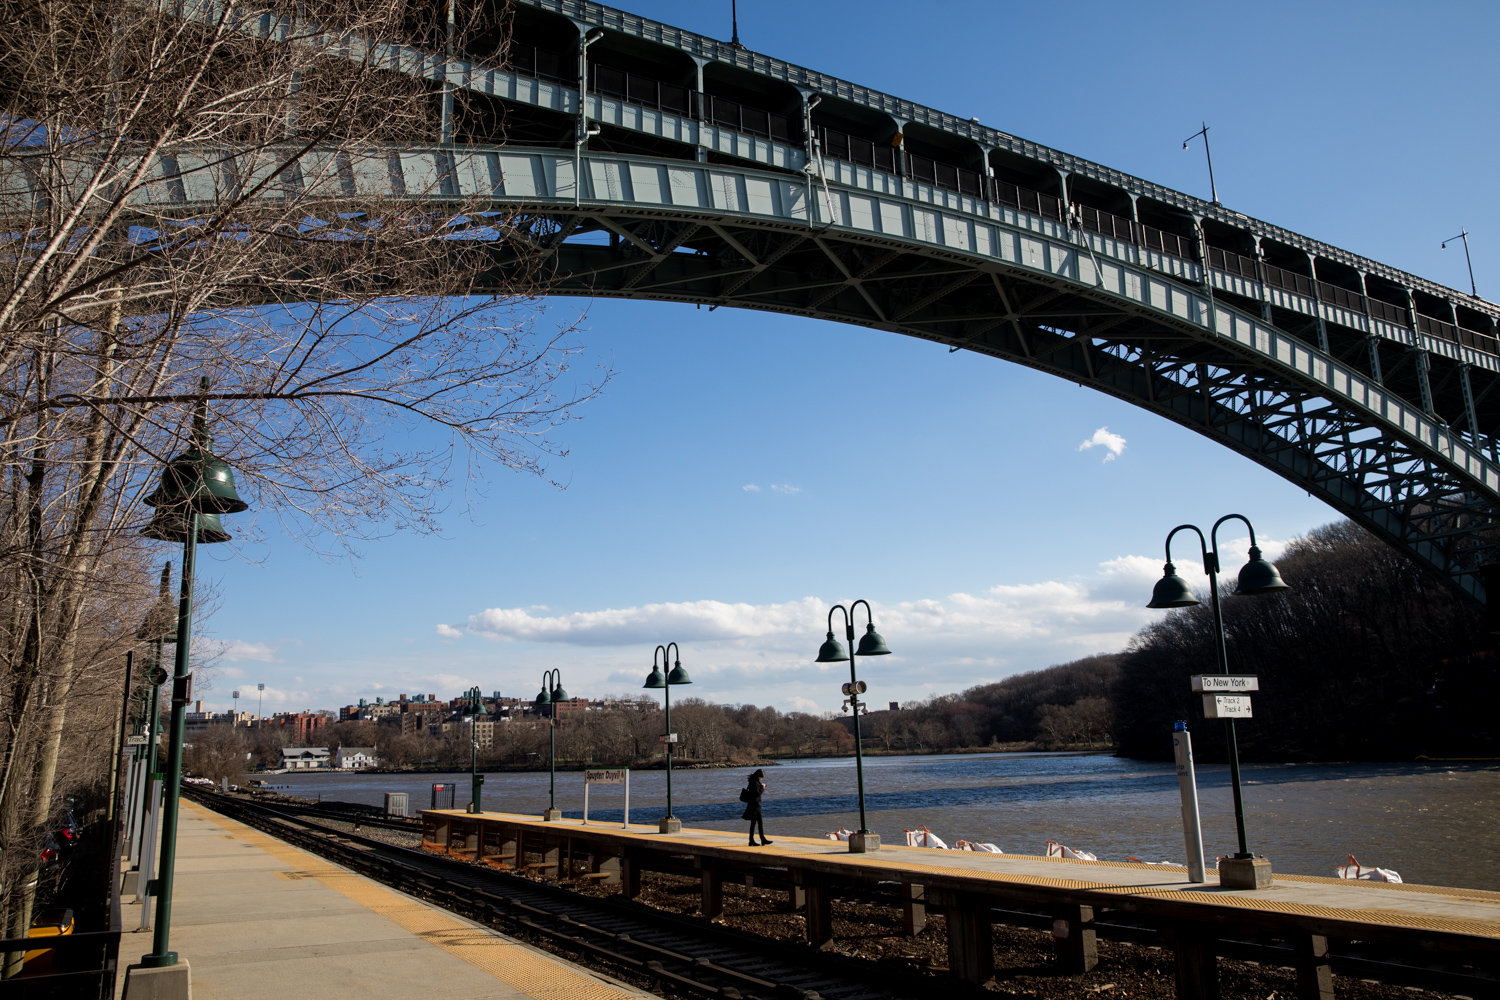 The Spuyten Duyvil Metro-North station is known for its picturesque views. What it isn't known for is being accessible to those who have personal mobility issues, and might not be able to climb or descend the stairs connected to the station.